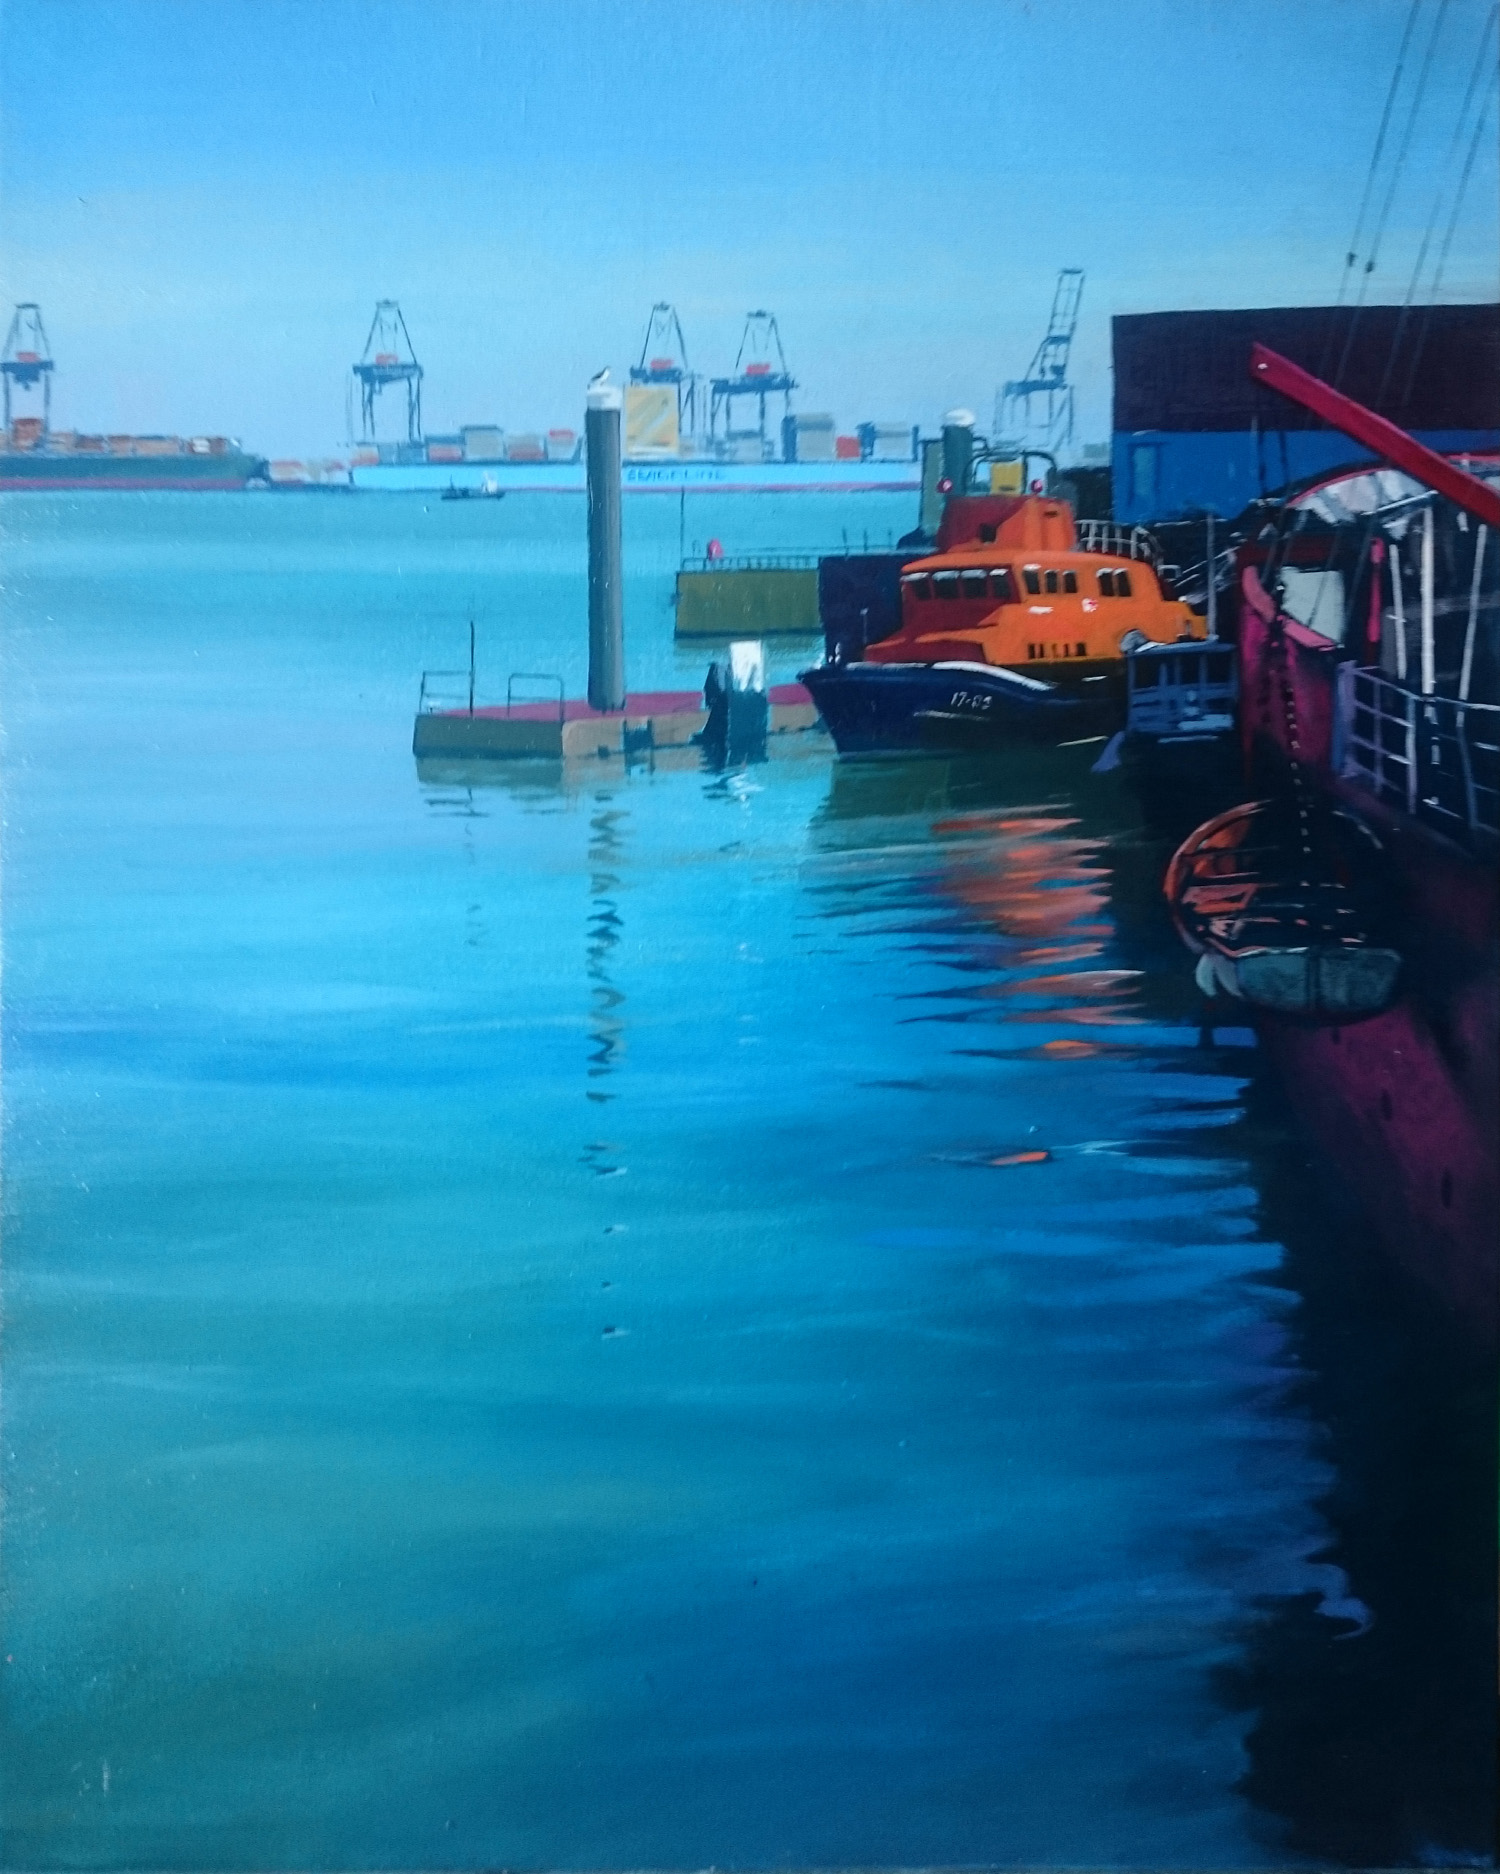 Harwich 12  50 x 40 cm  oil on canvas  £650